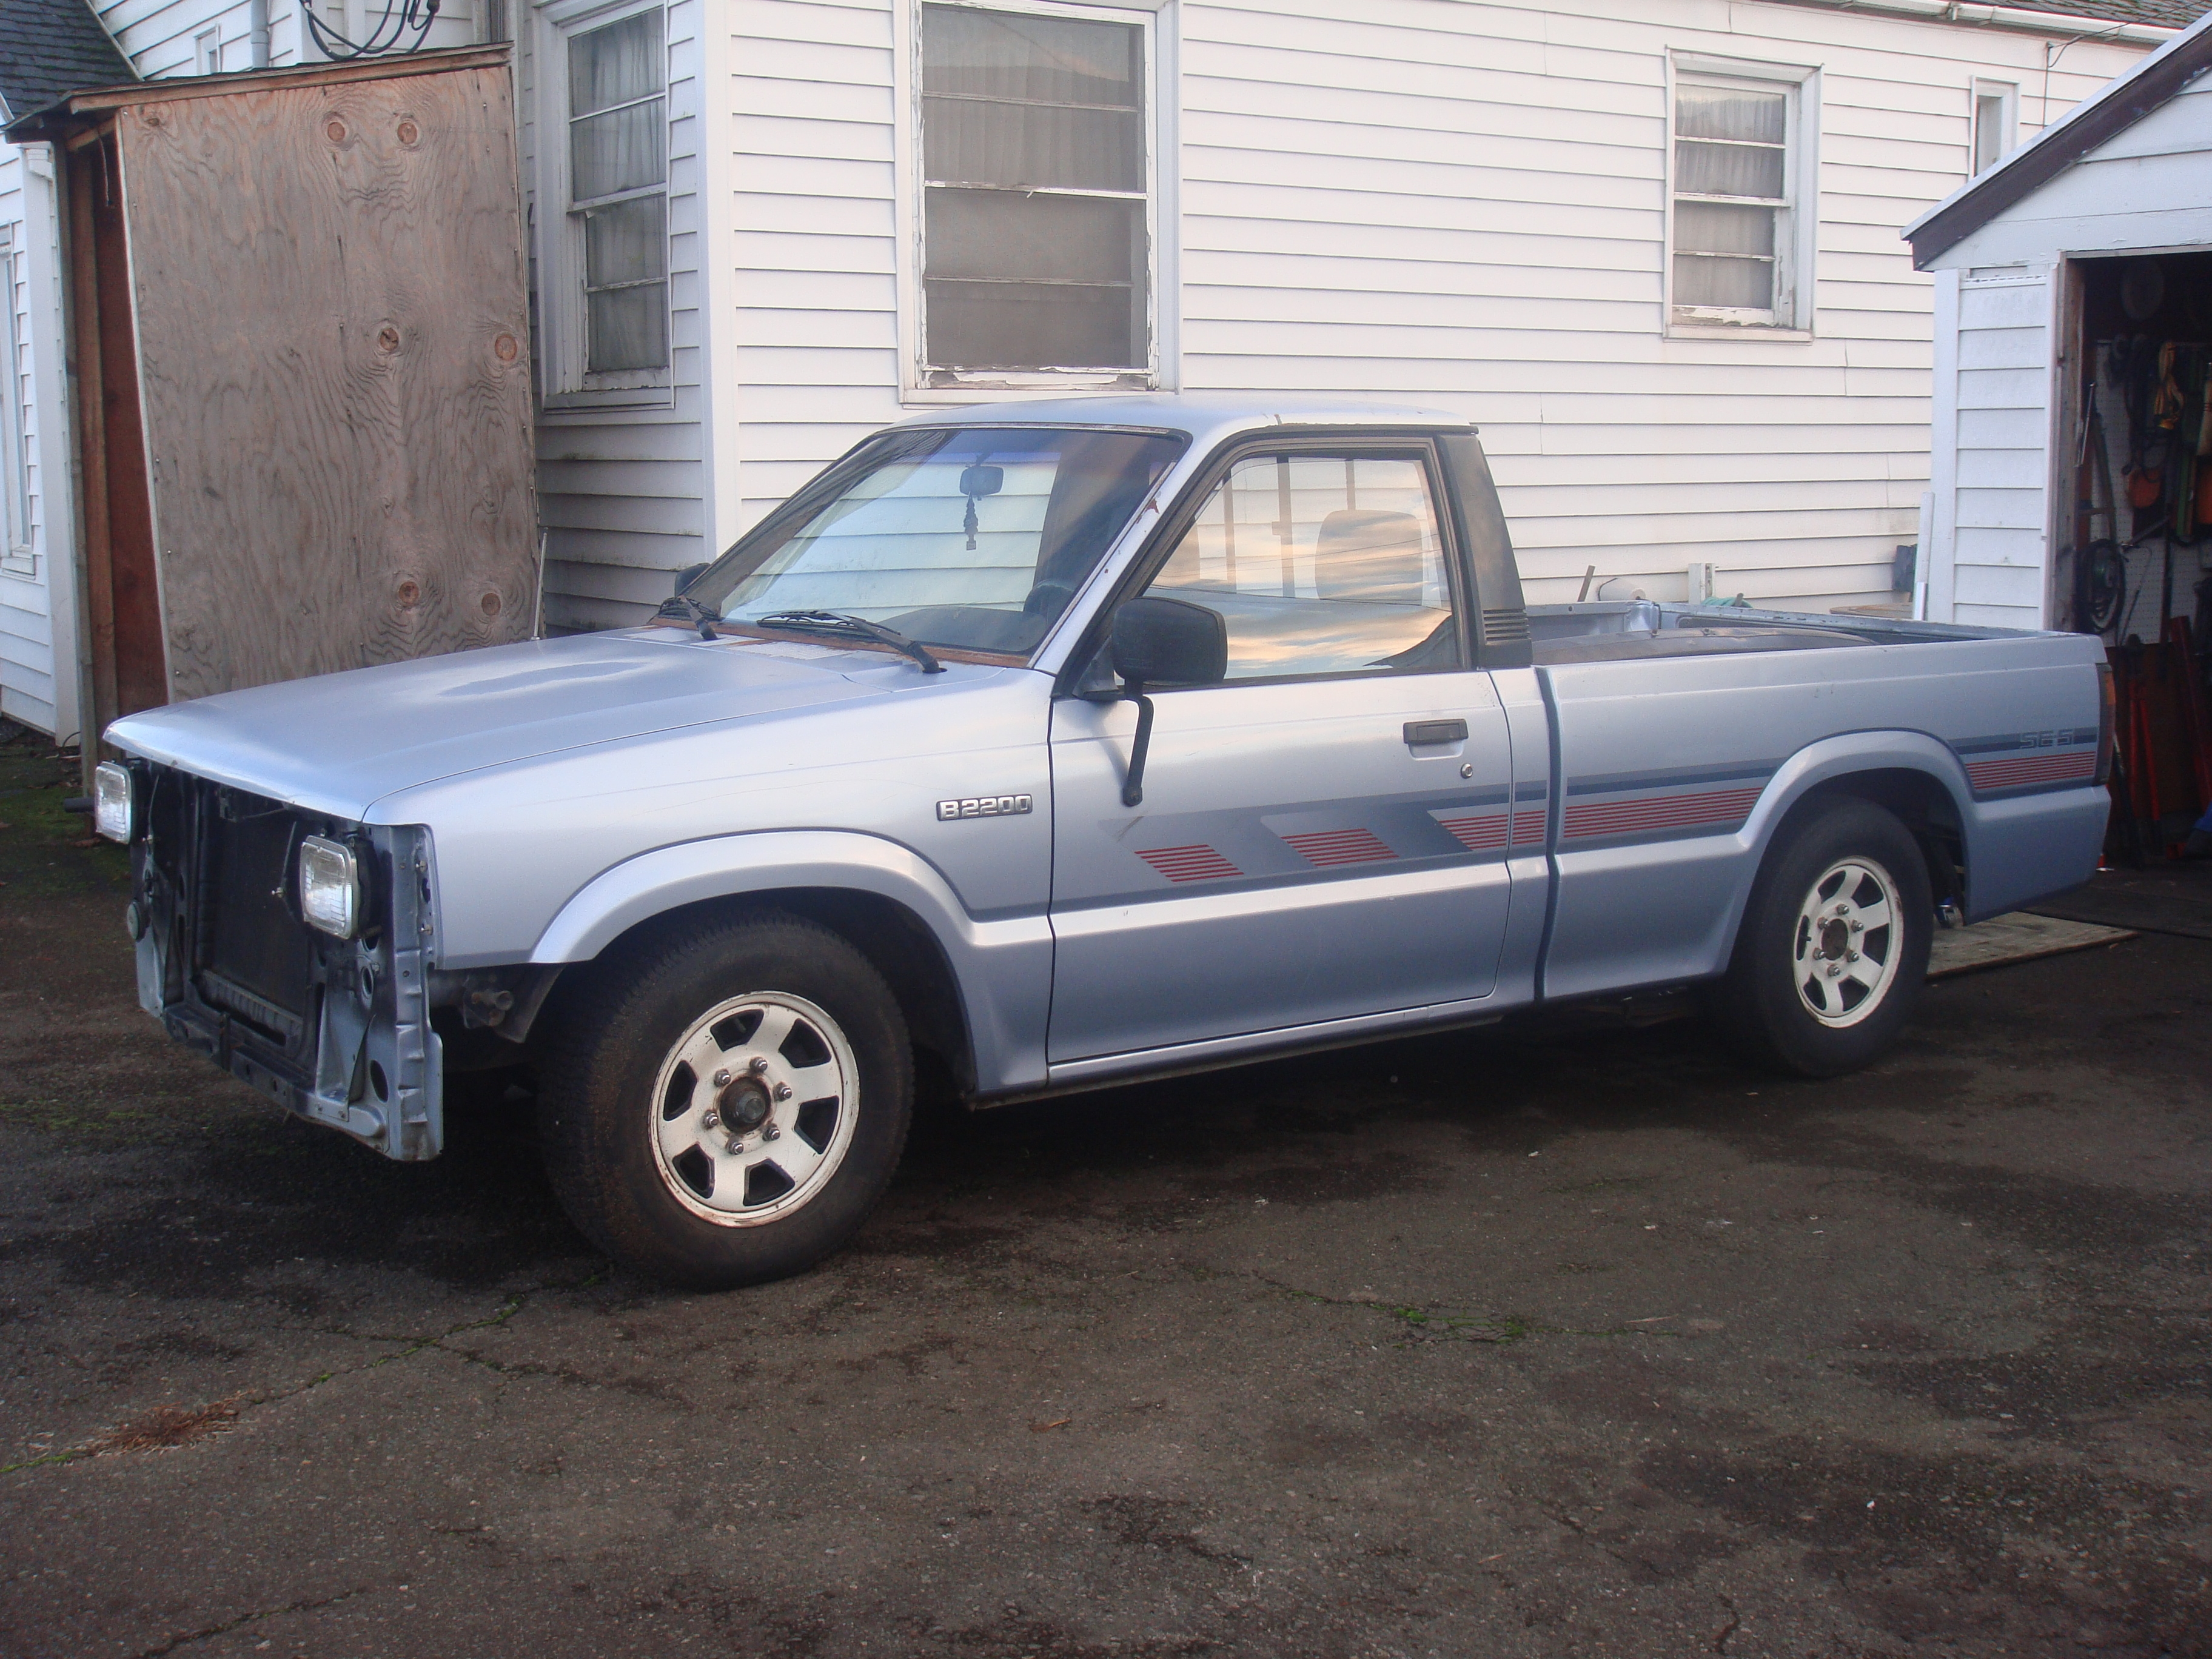 cody_olson 1991 Mazda B-Series Regular Cab 14919863